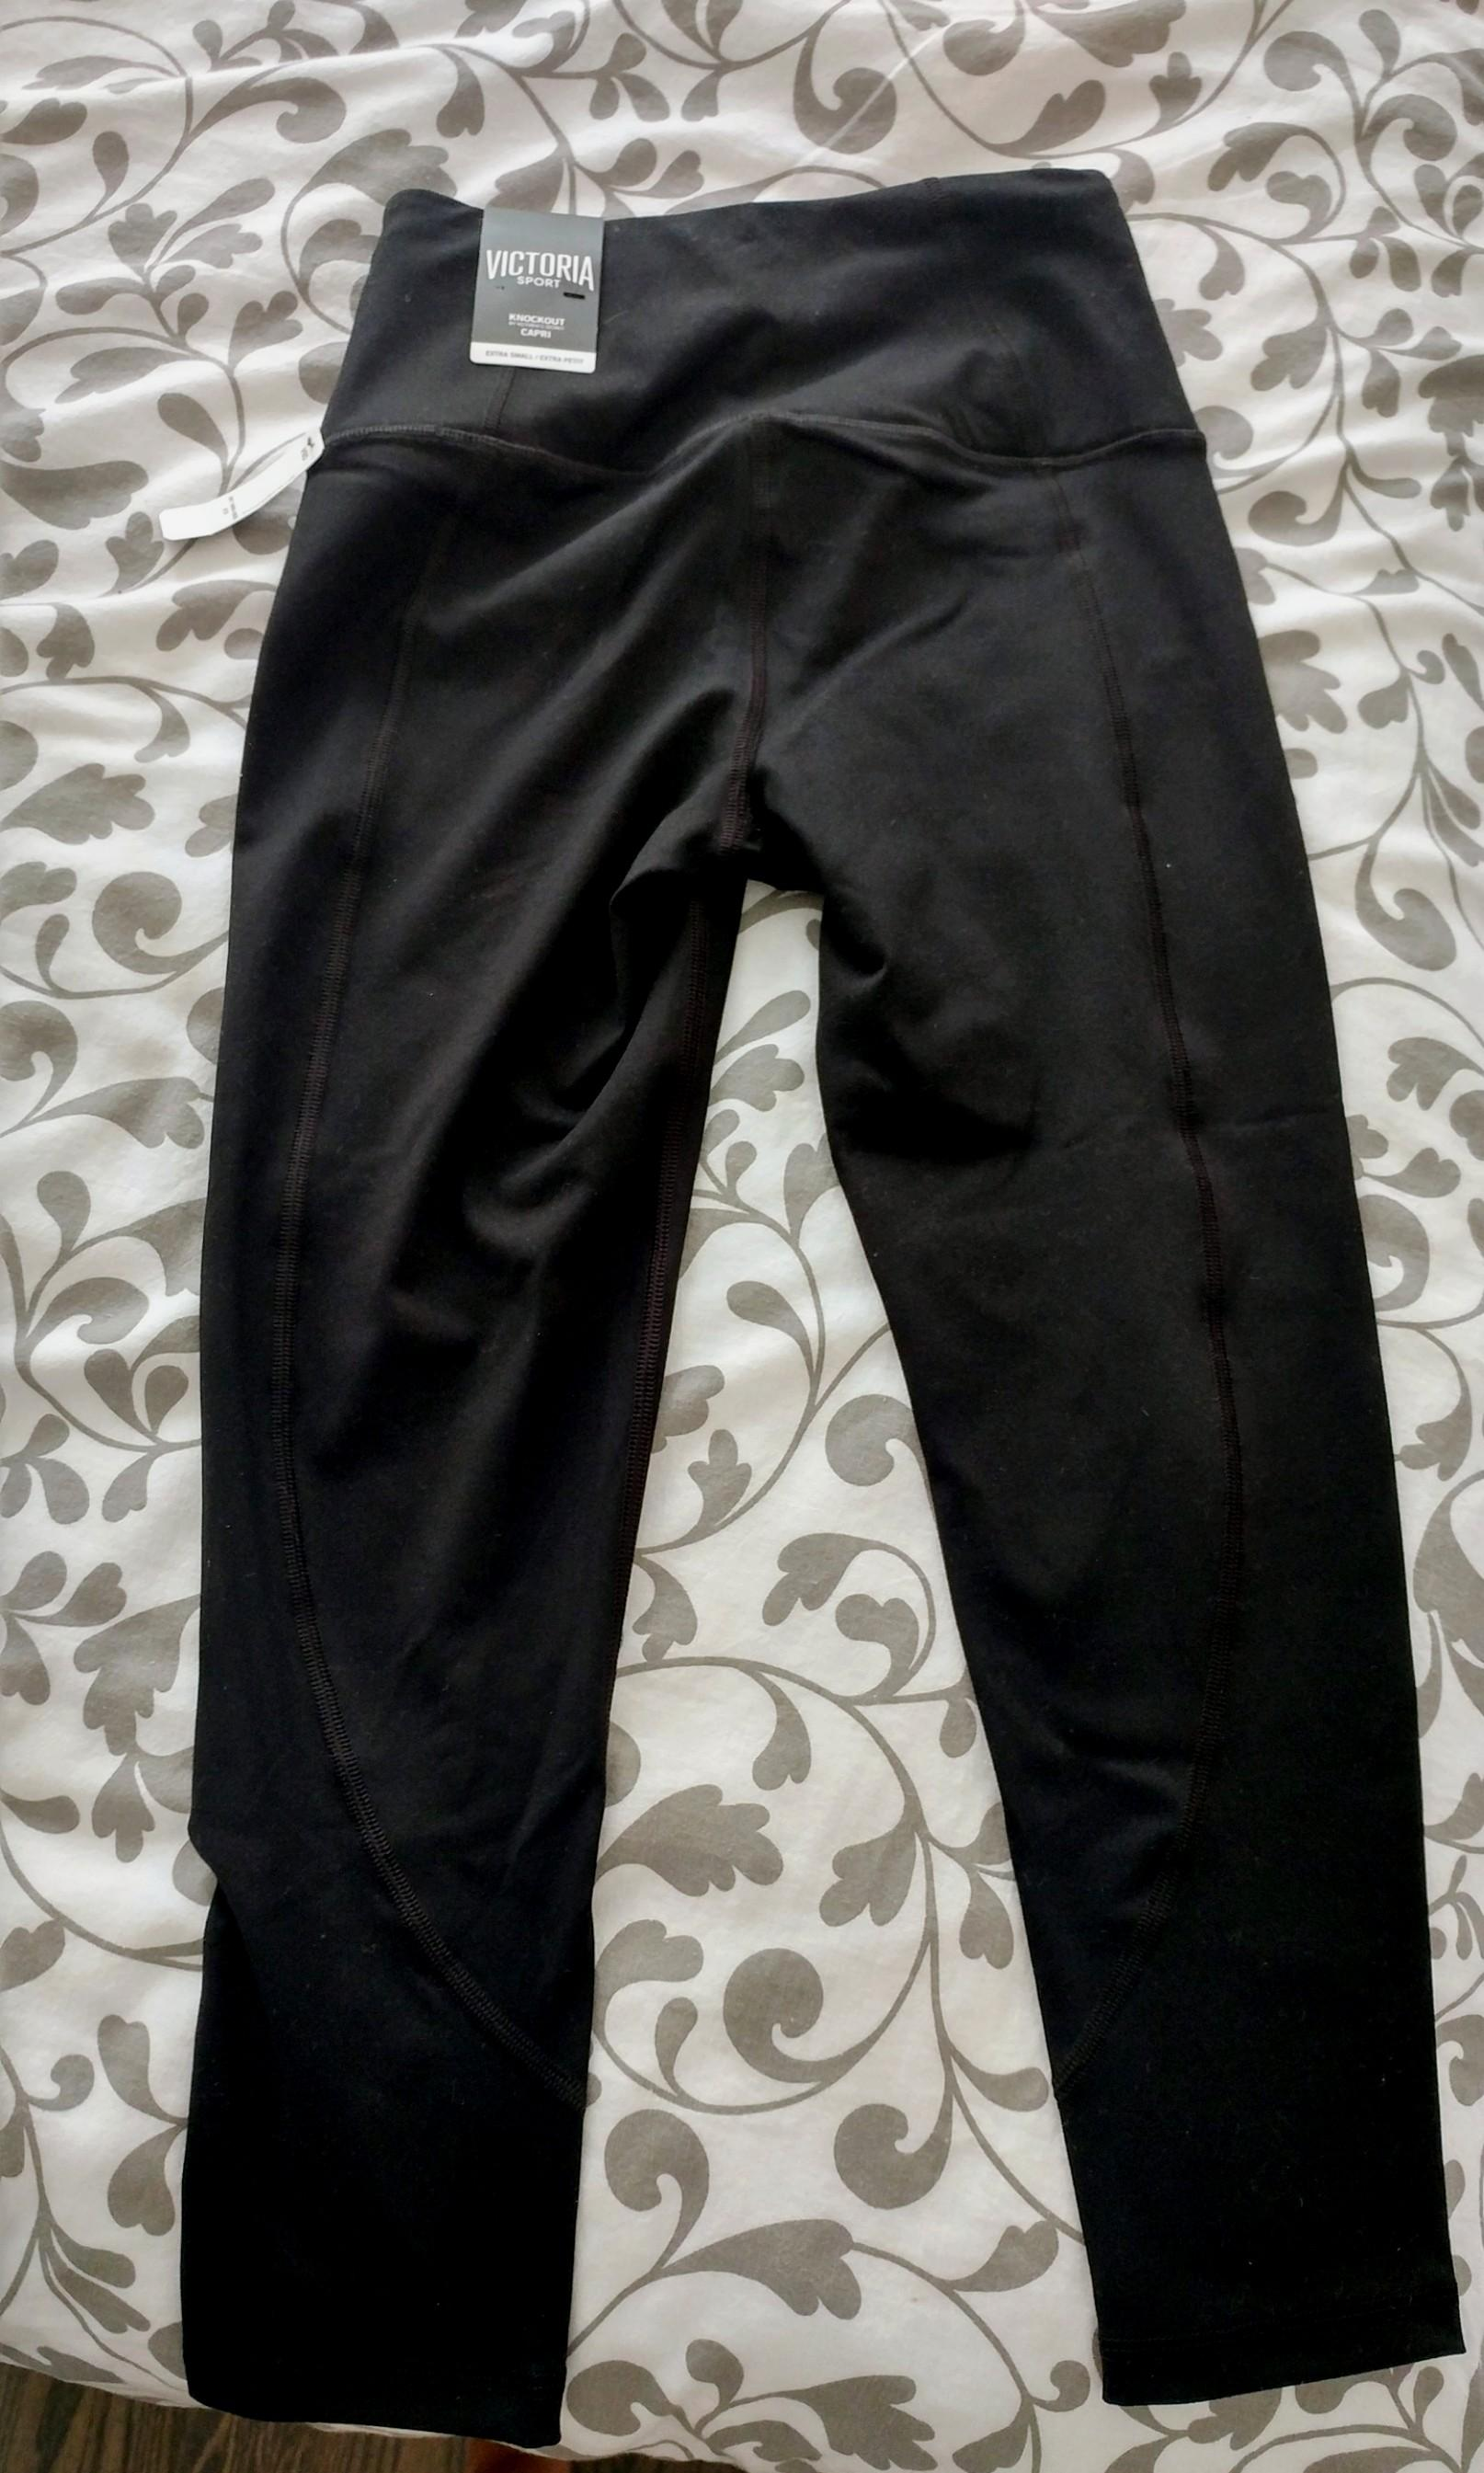 Highwaisted knockout capris from Victoria Secret Sport